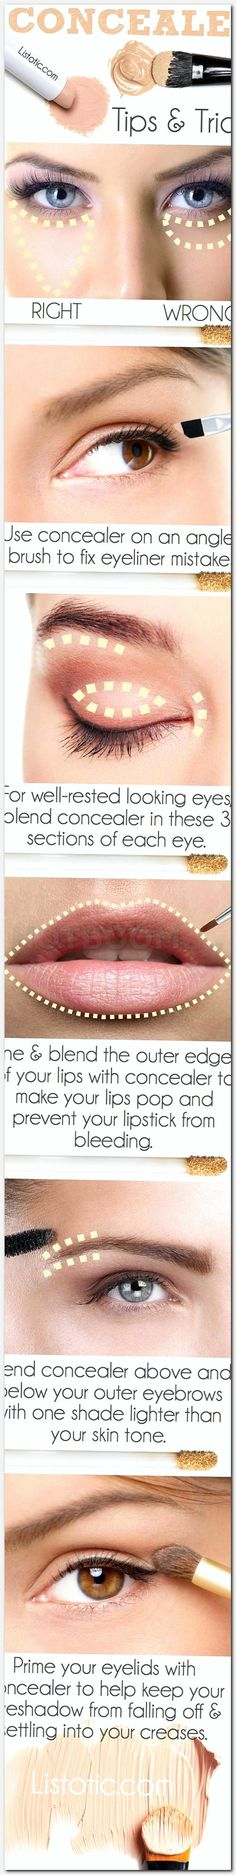 make up items for girls, how to do evening eye makeup, makeup for light pink prom dress, leading cosmetic companies, easy womens halloween makeup, tutorial make up video, very black skin, ulta beauty, basic makeup ideas, makeup faces images, how to do eye make, natural makeup tips, how to do beautiful eyeshadow, black grey smokey eye makeup, eys mekap, eyebrow threading